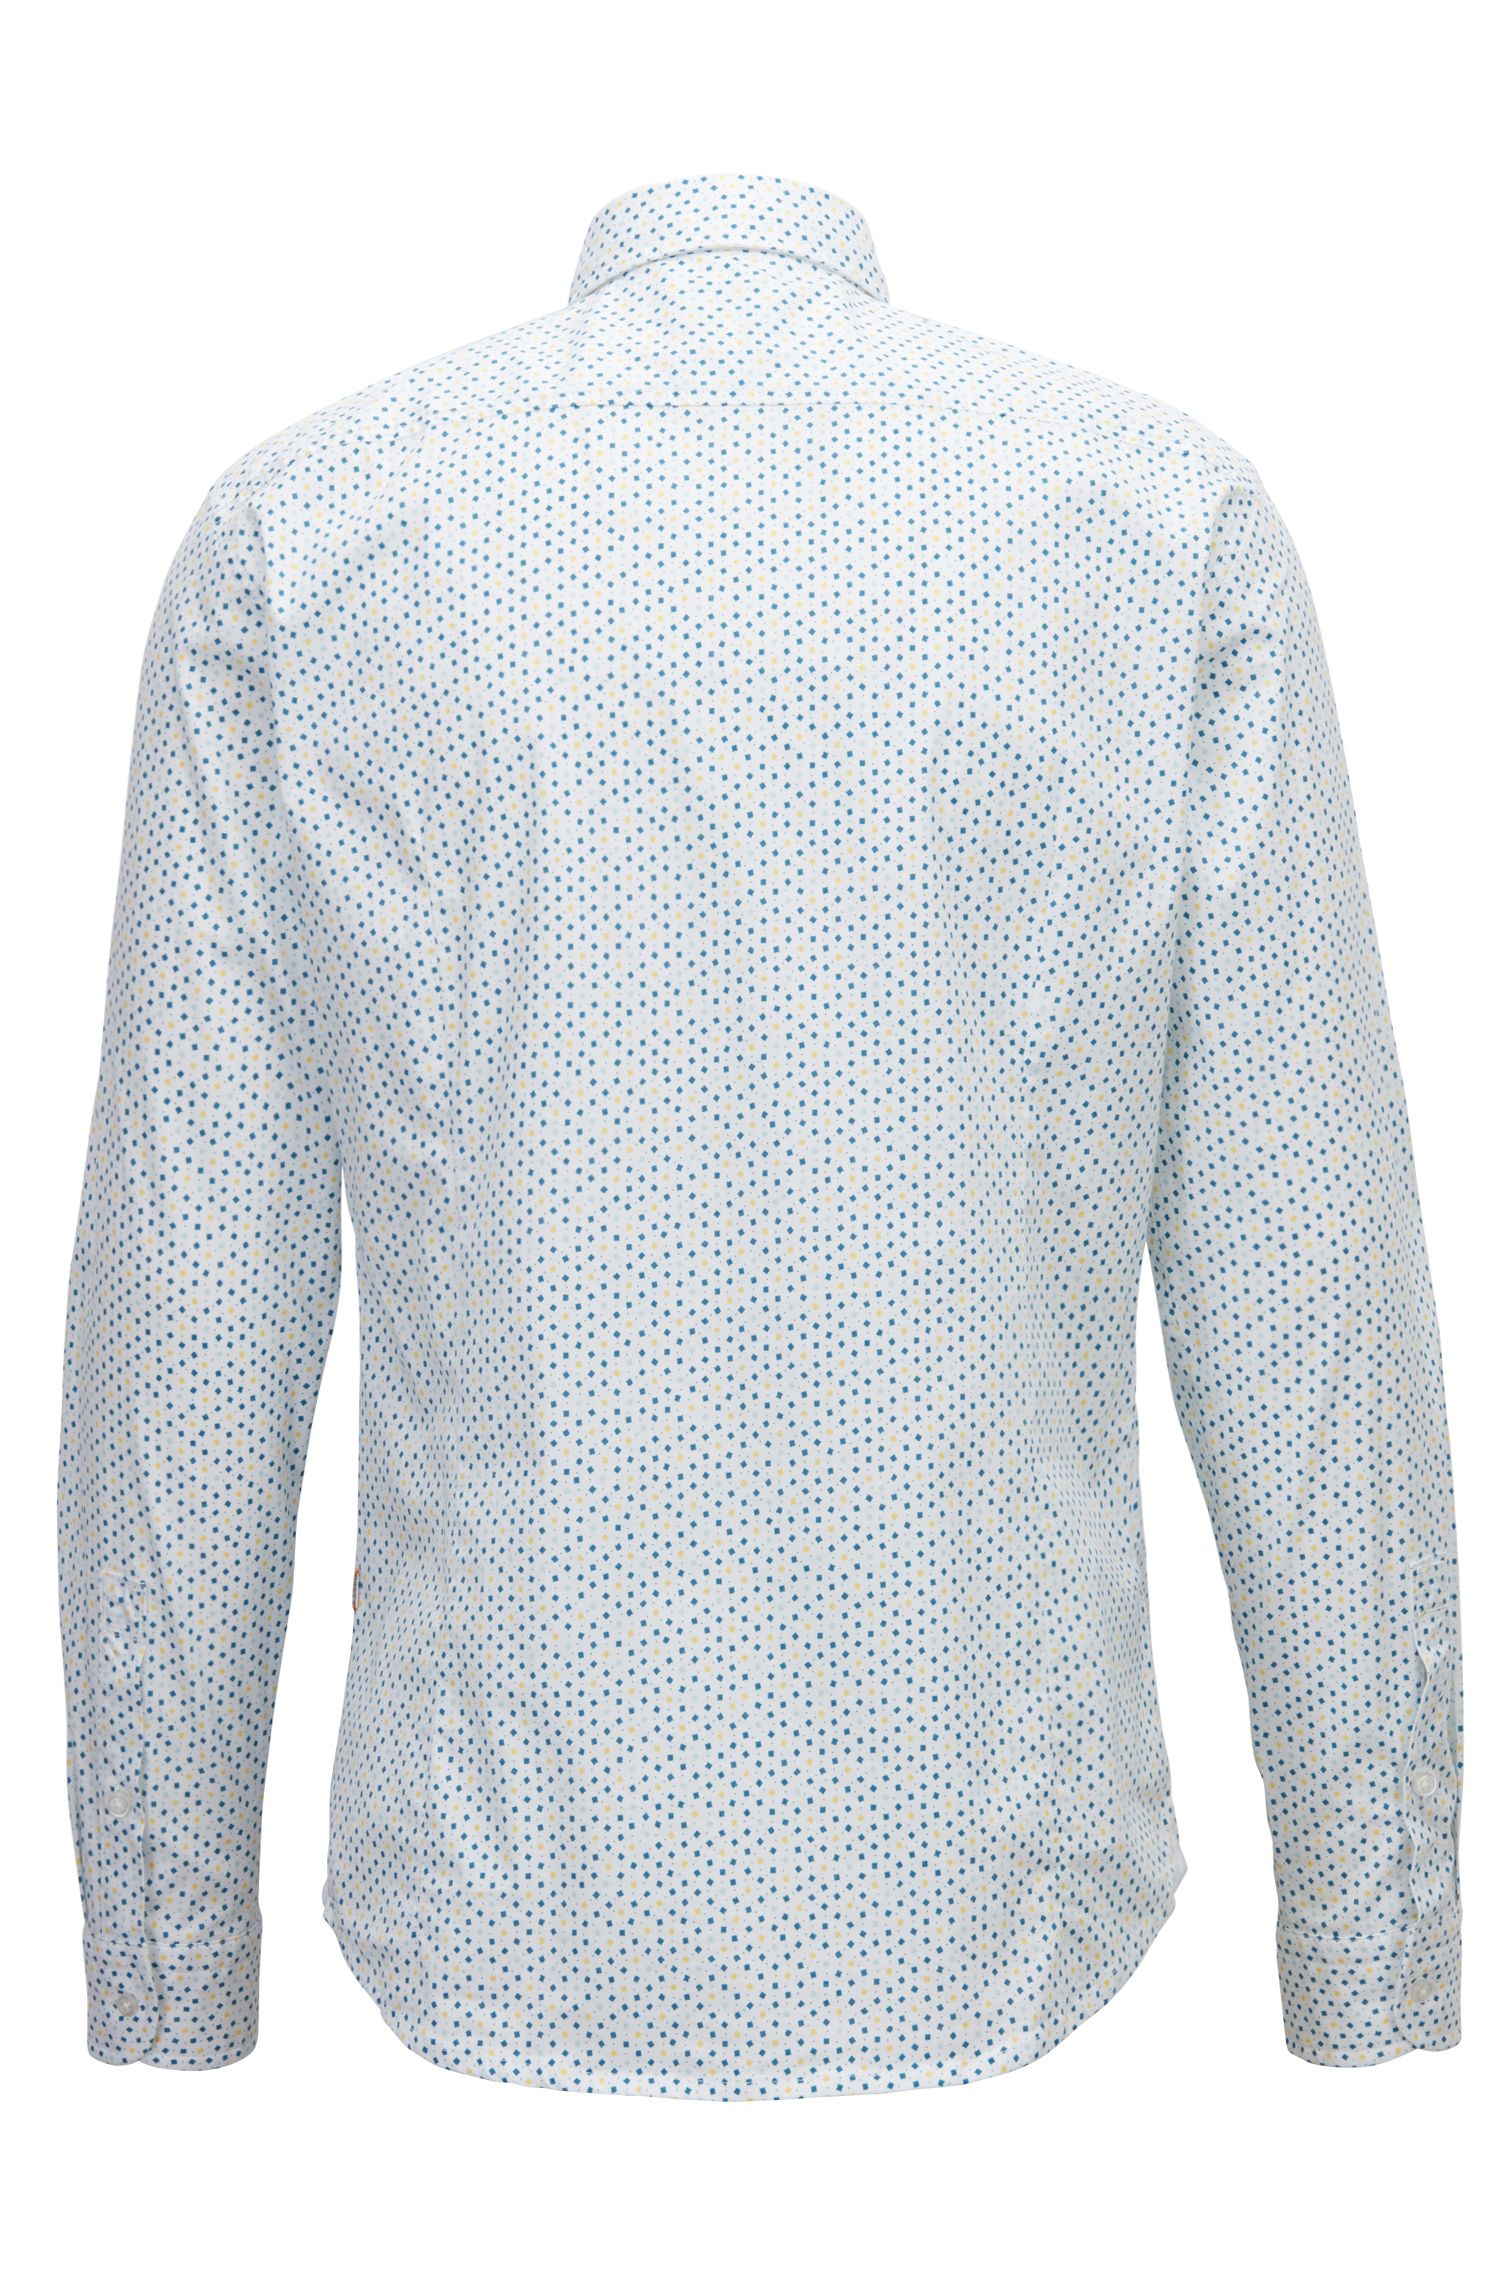 Hugo Boss - Slim-fit shirt in stretch cotton with mini-geometric print - 3